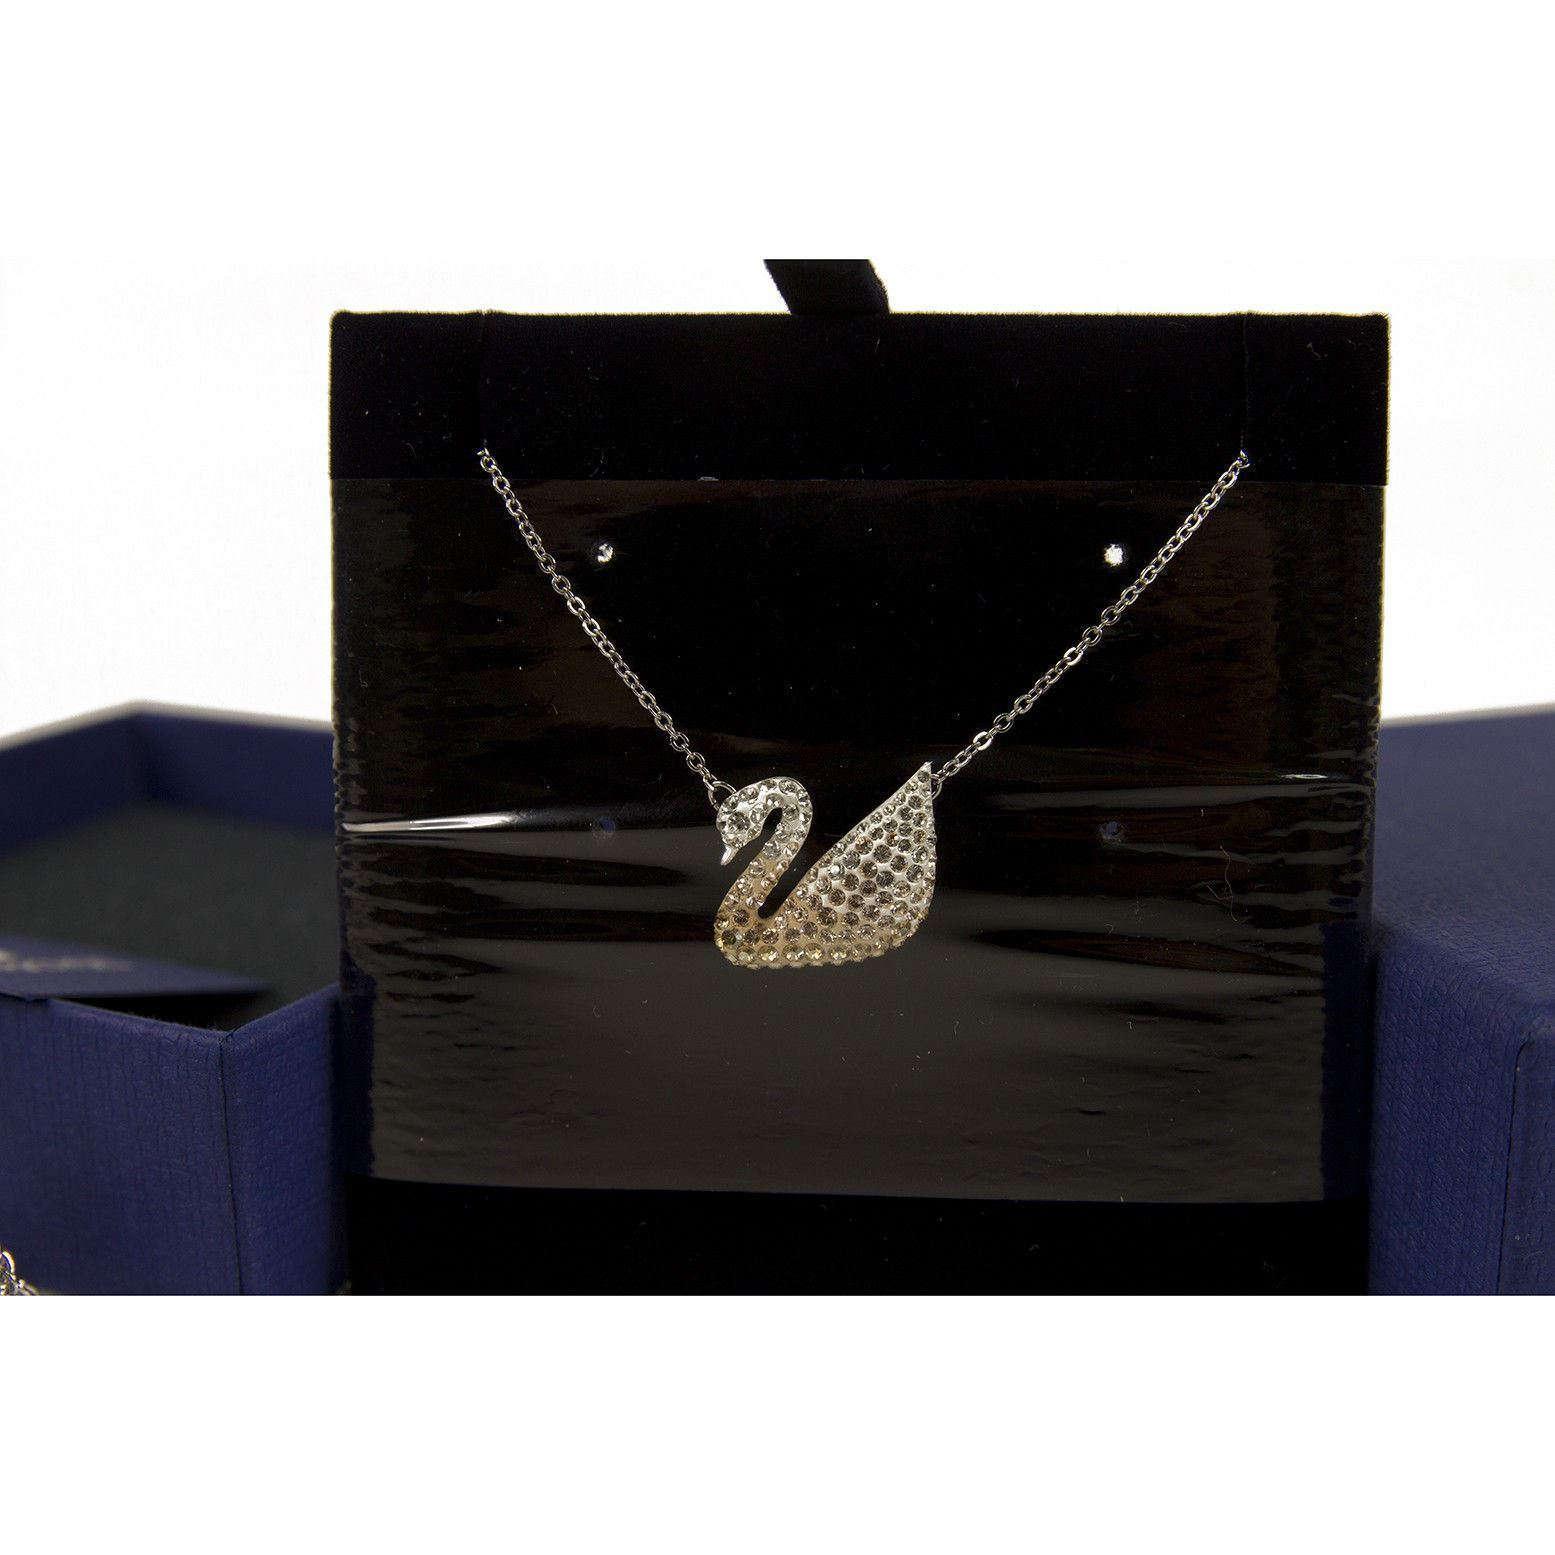 Swarovski Signature Swan Pendant with Chain Never Used in Box